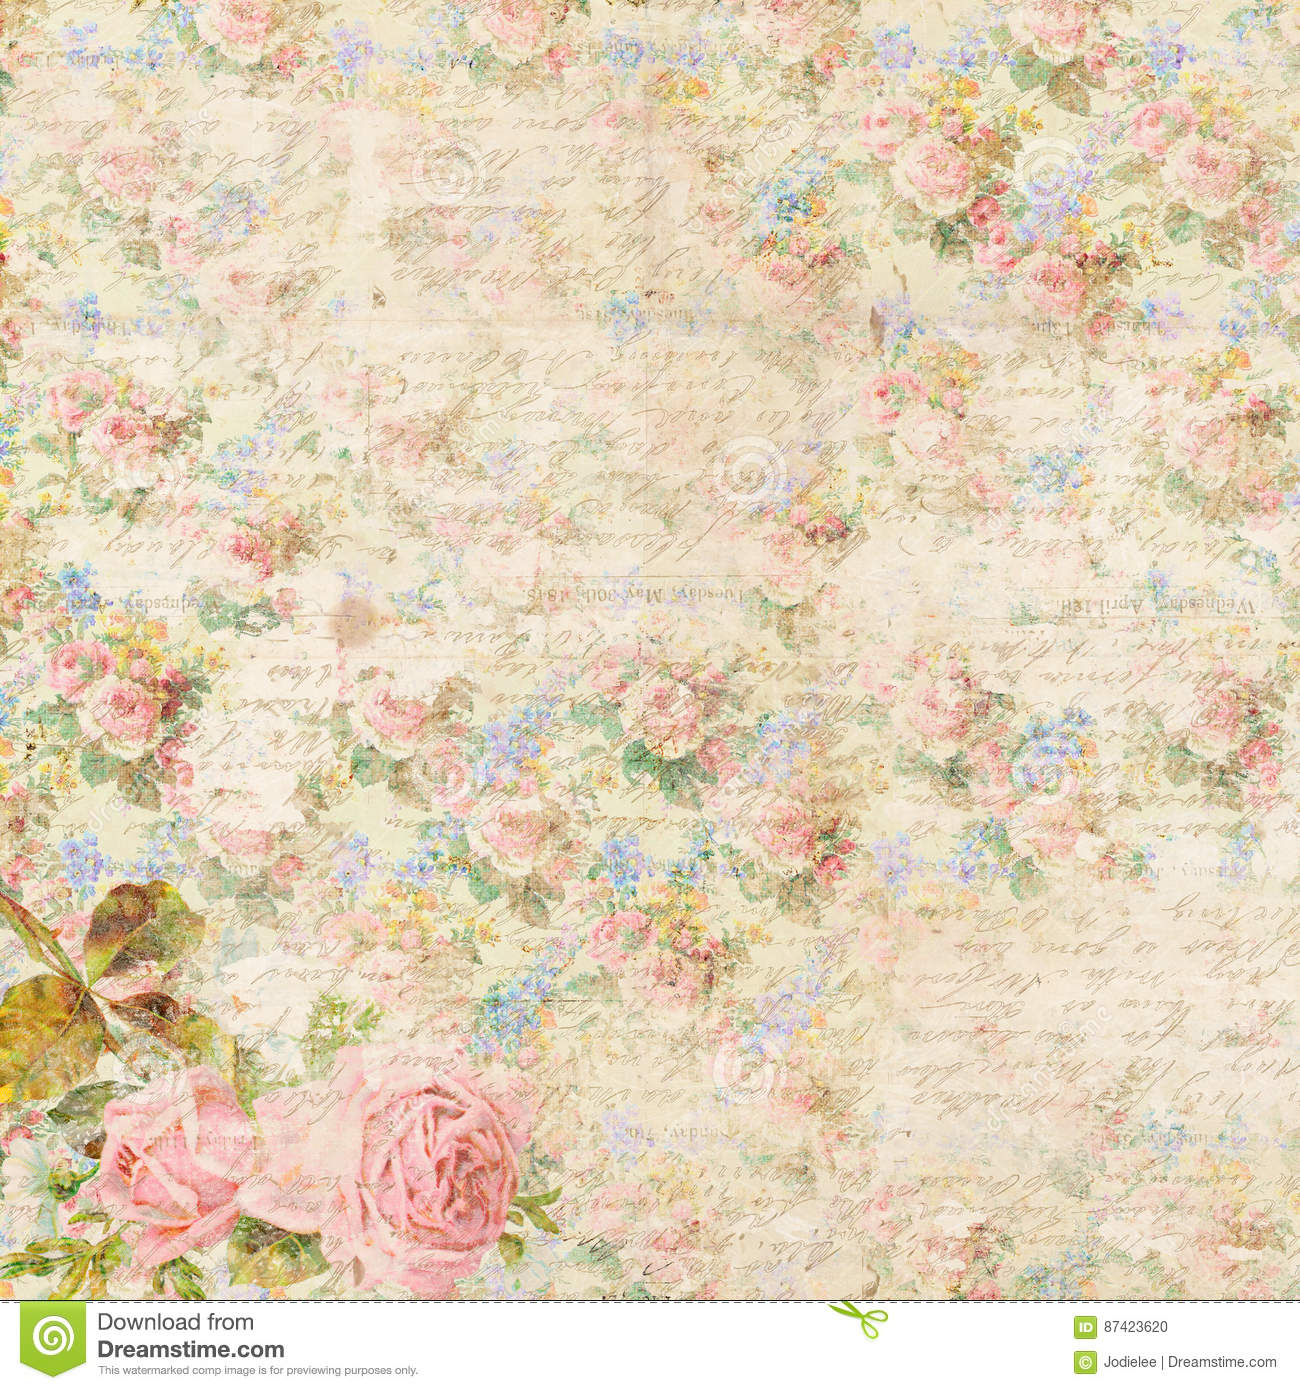 Shabby chic vintage flower background with antique handwriting script